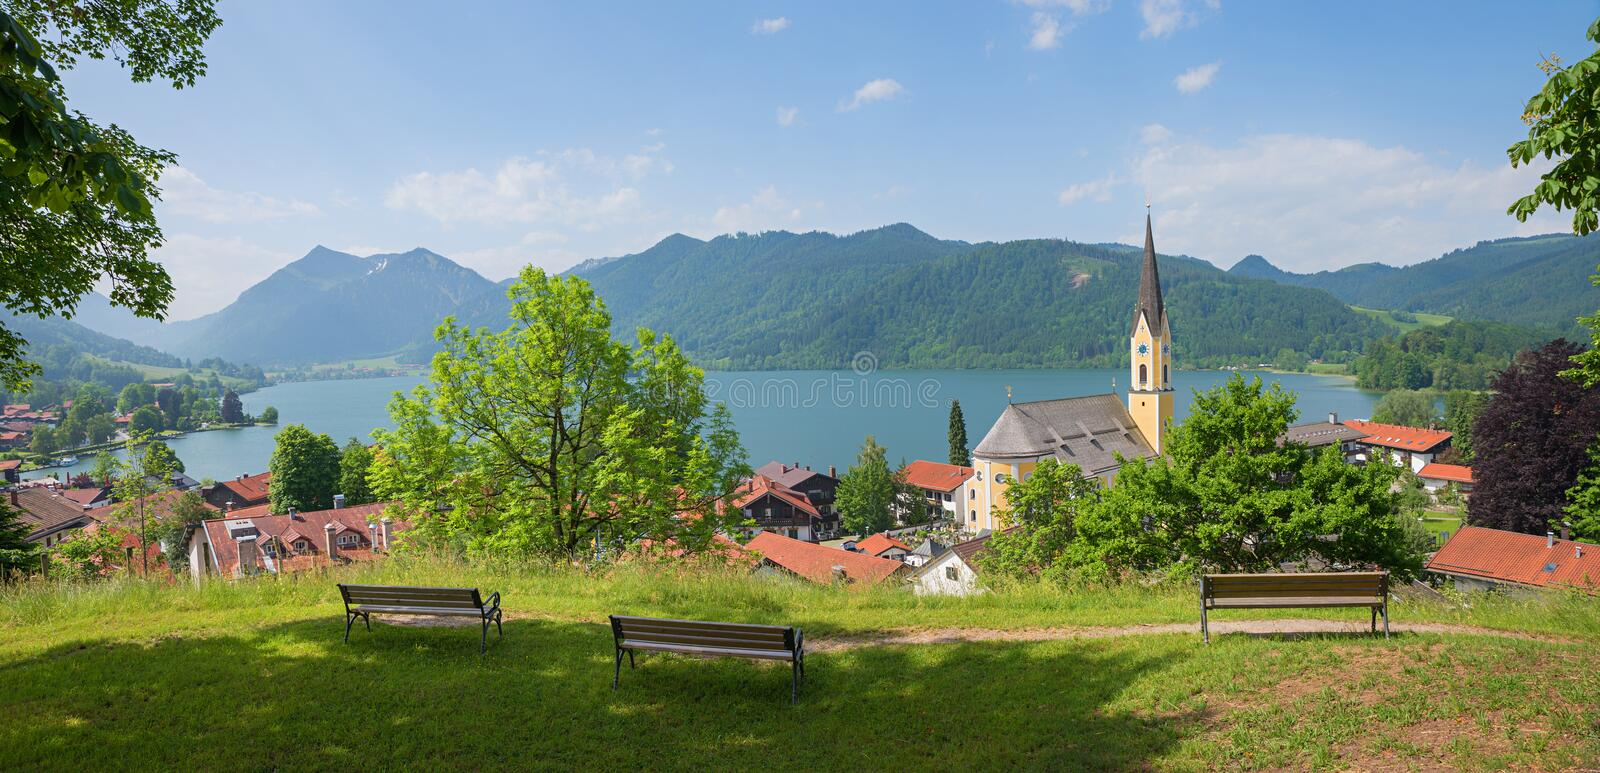 View from weinberg hill to spa town schliersee, st sixtus church. upper bavaria in summer. Three benches for rest at the hill top stock image